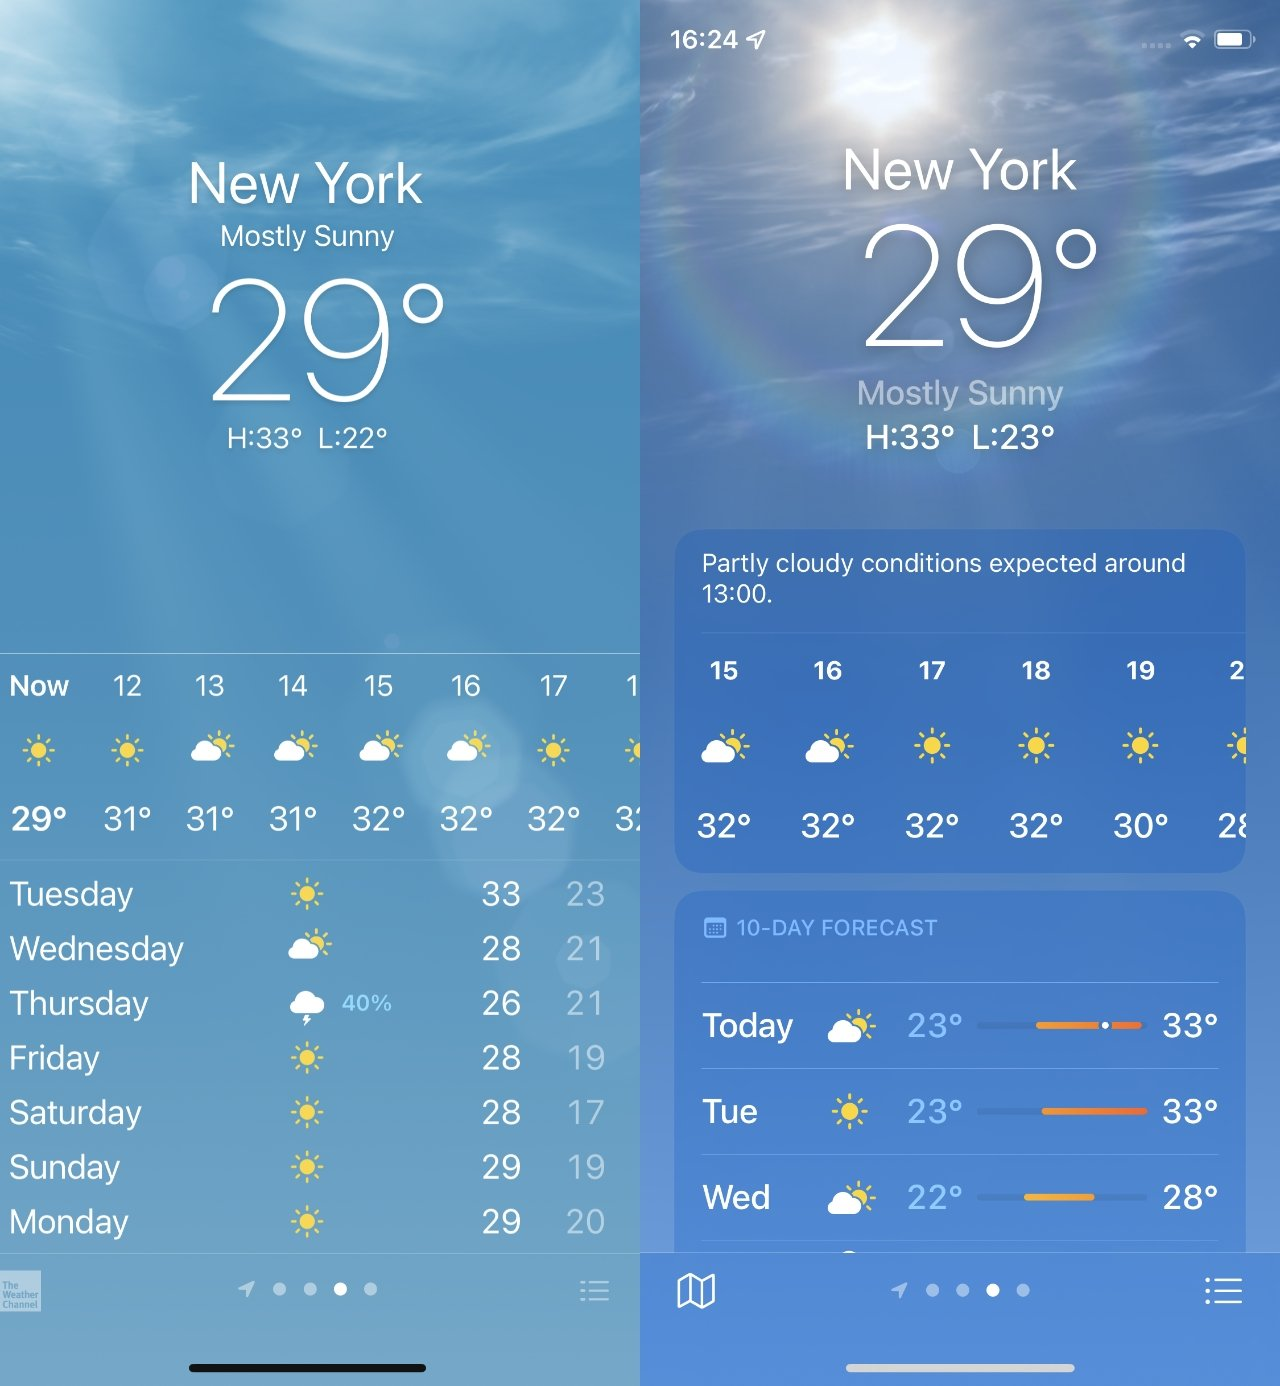 Weather details are more spaced out, making them easier to find and read